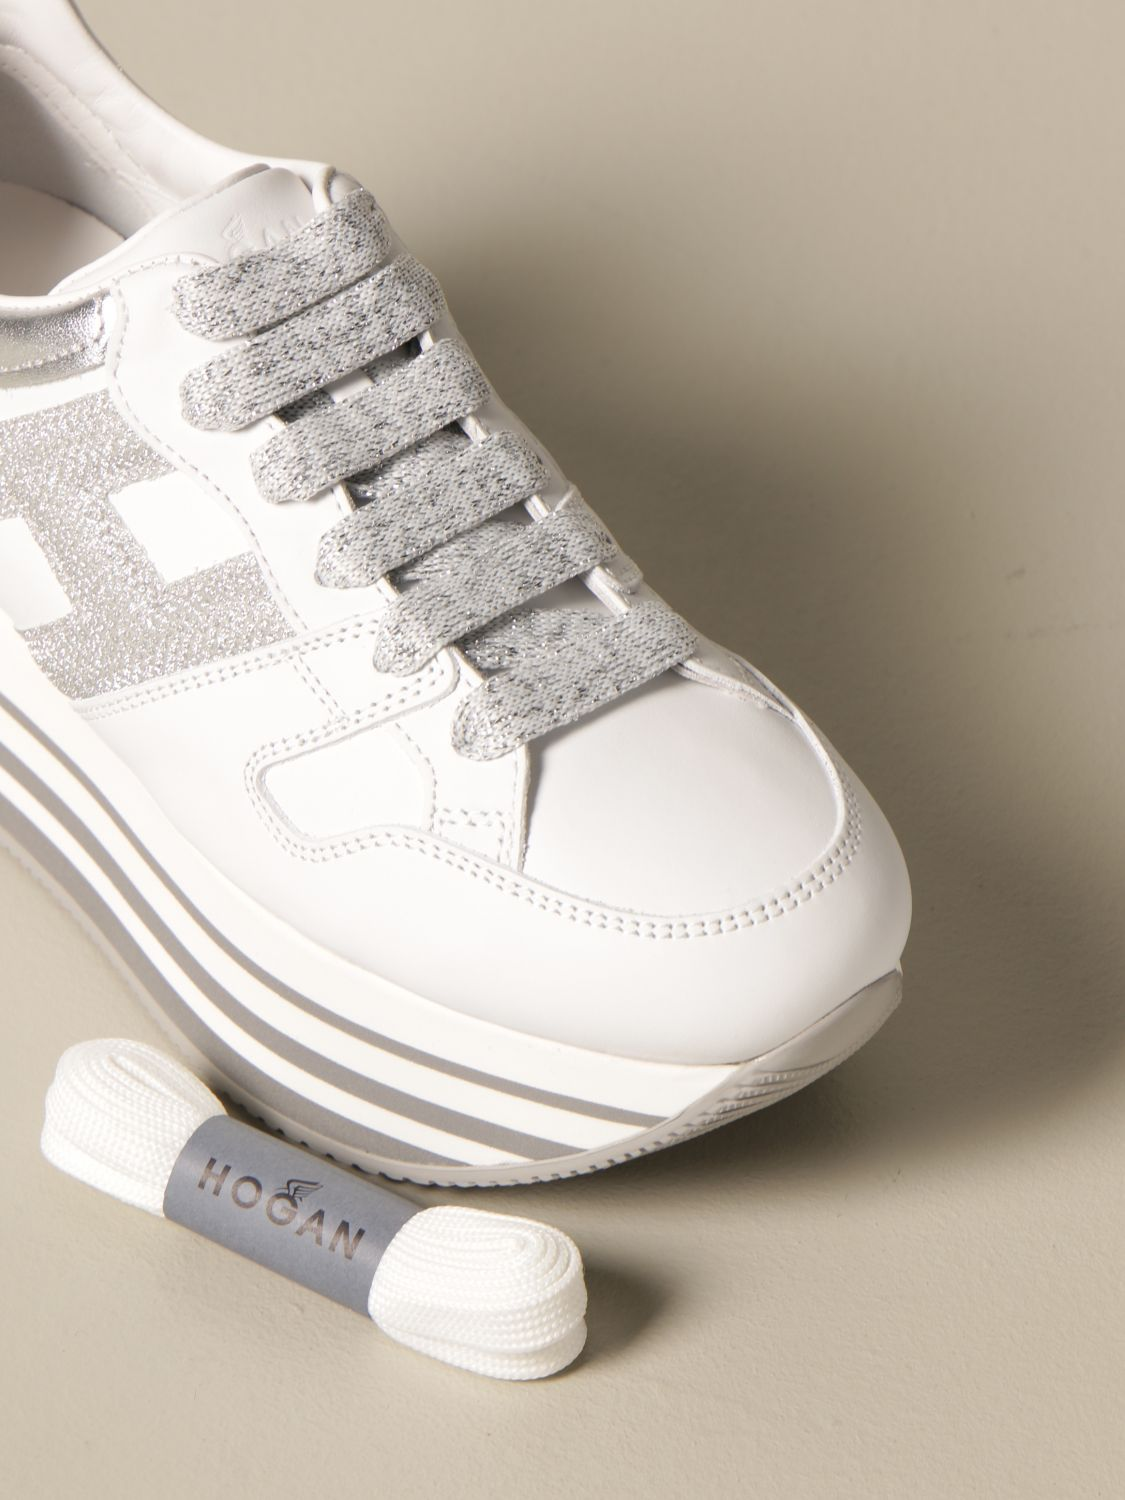 Maxi platform H283 Hogan sneakers in leather